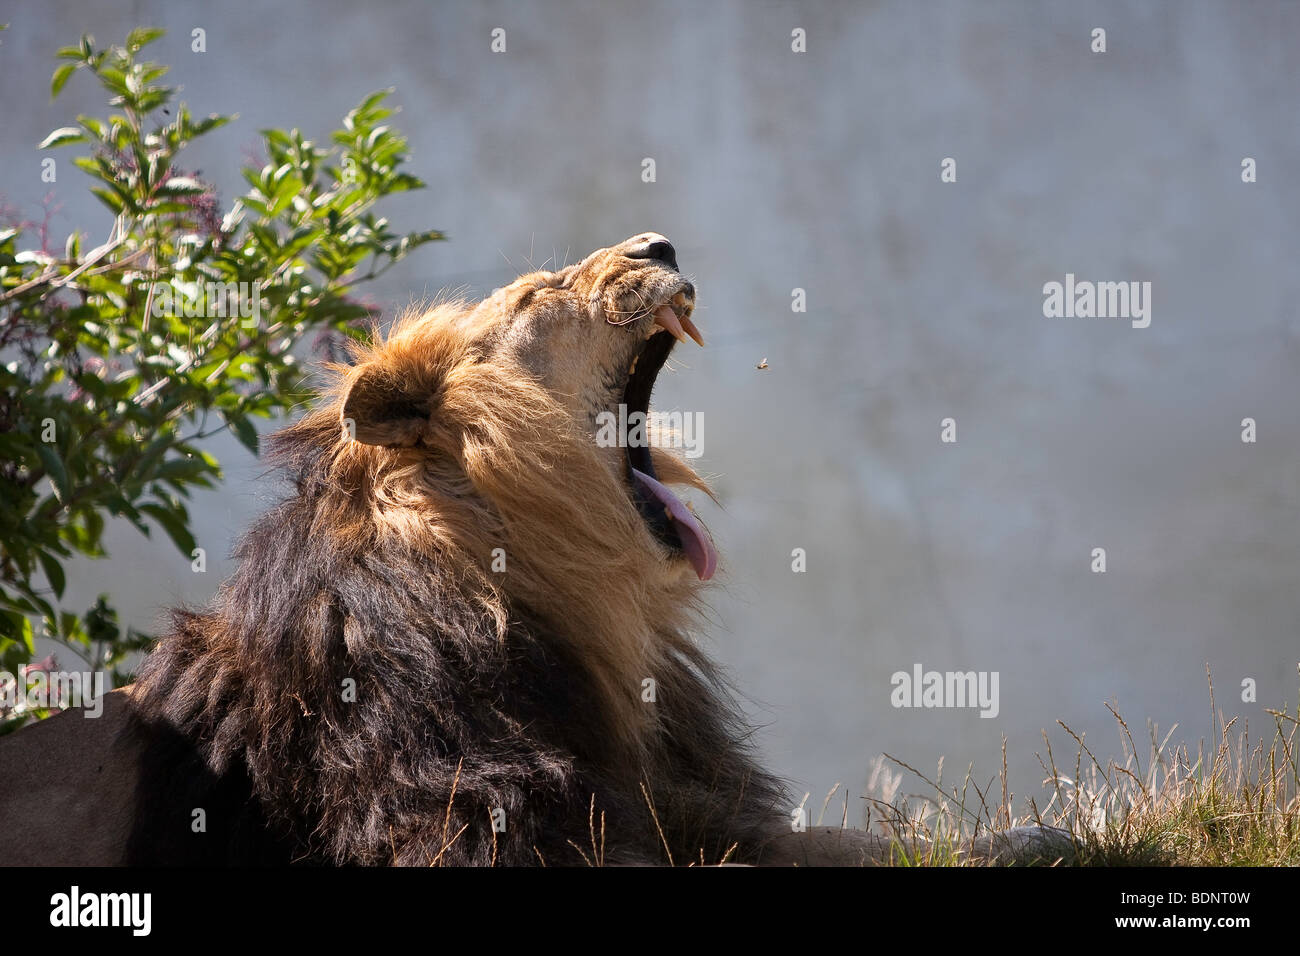 Male Lion yawning, Catching flys. - Stock Image